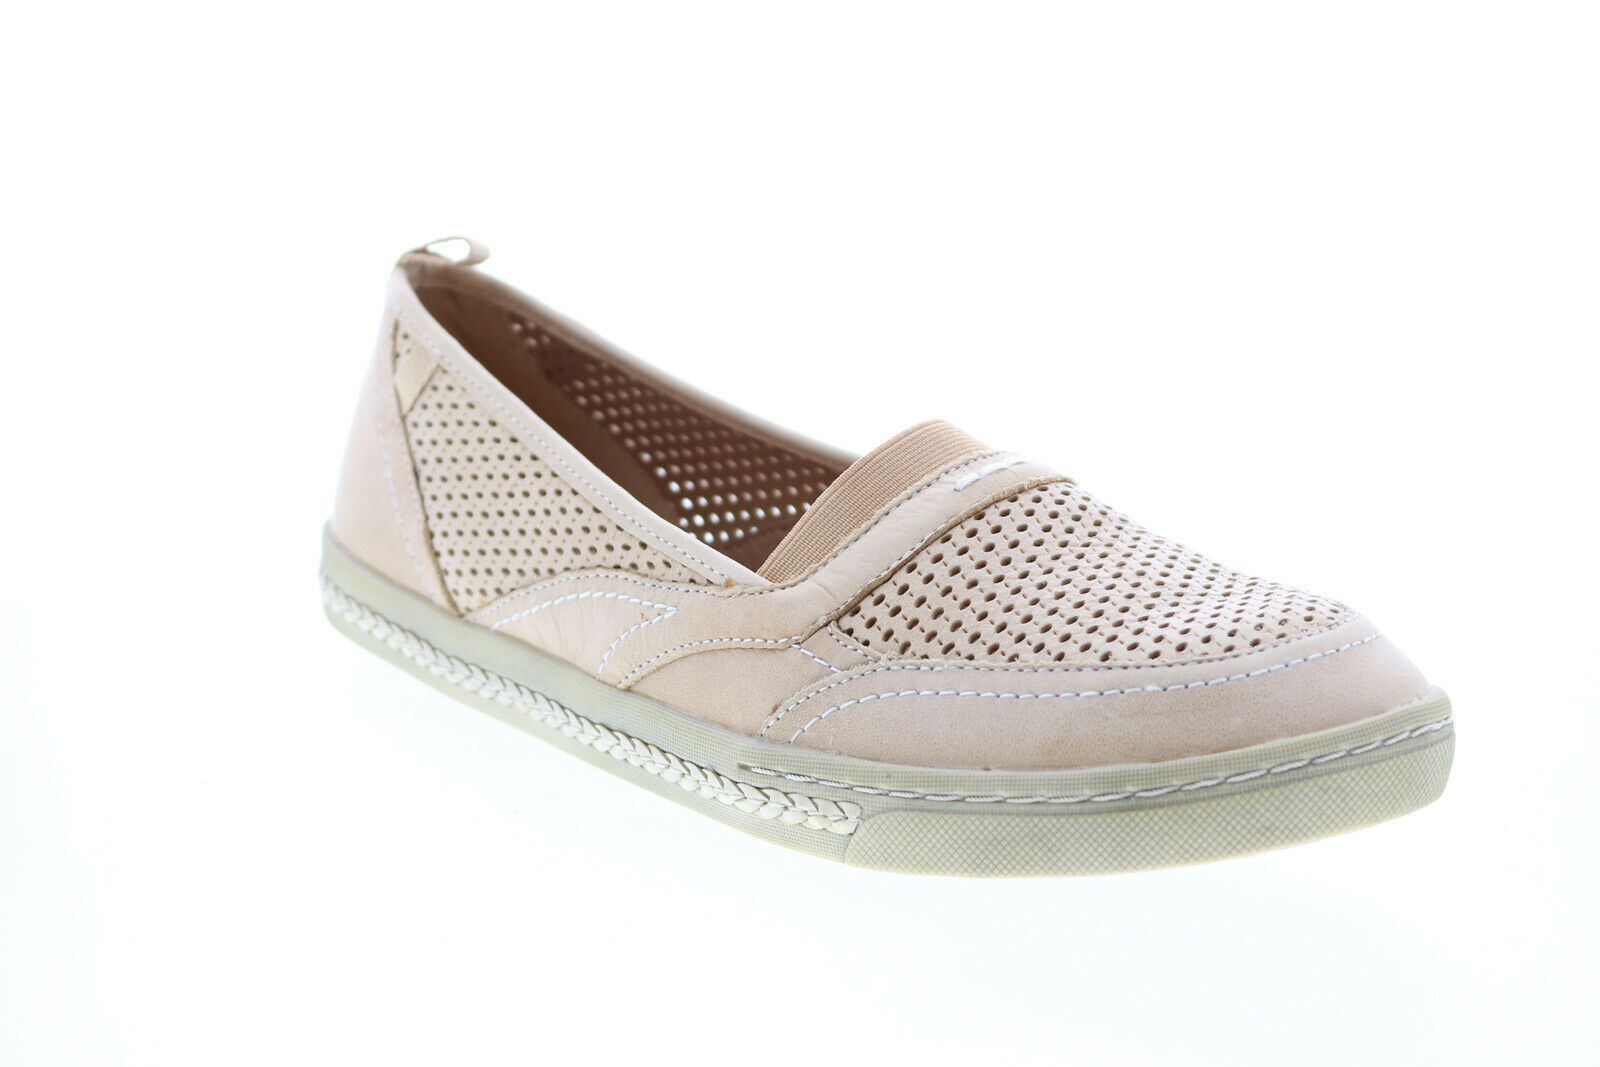 Earth Citrus Leather Womens Beige Leather Slip On Loafer Flats Shoes